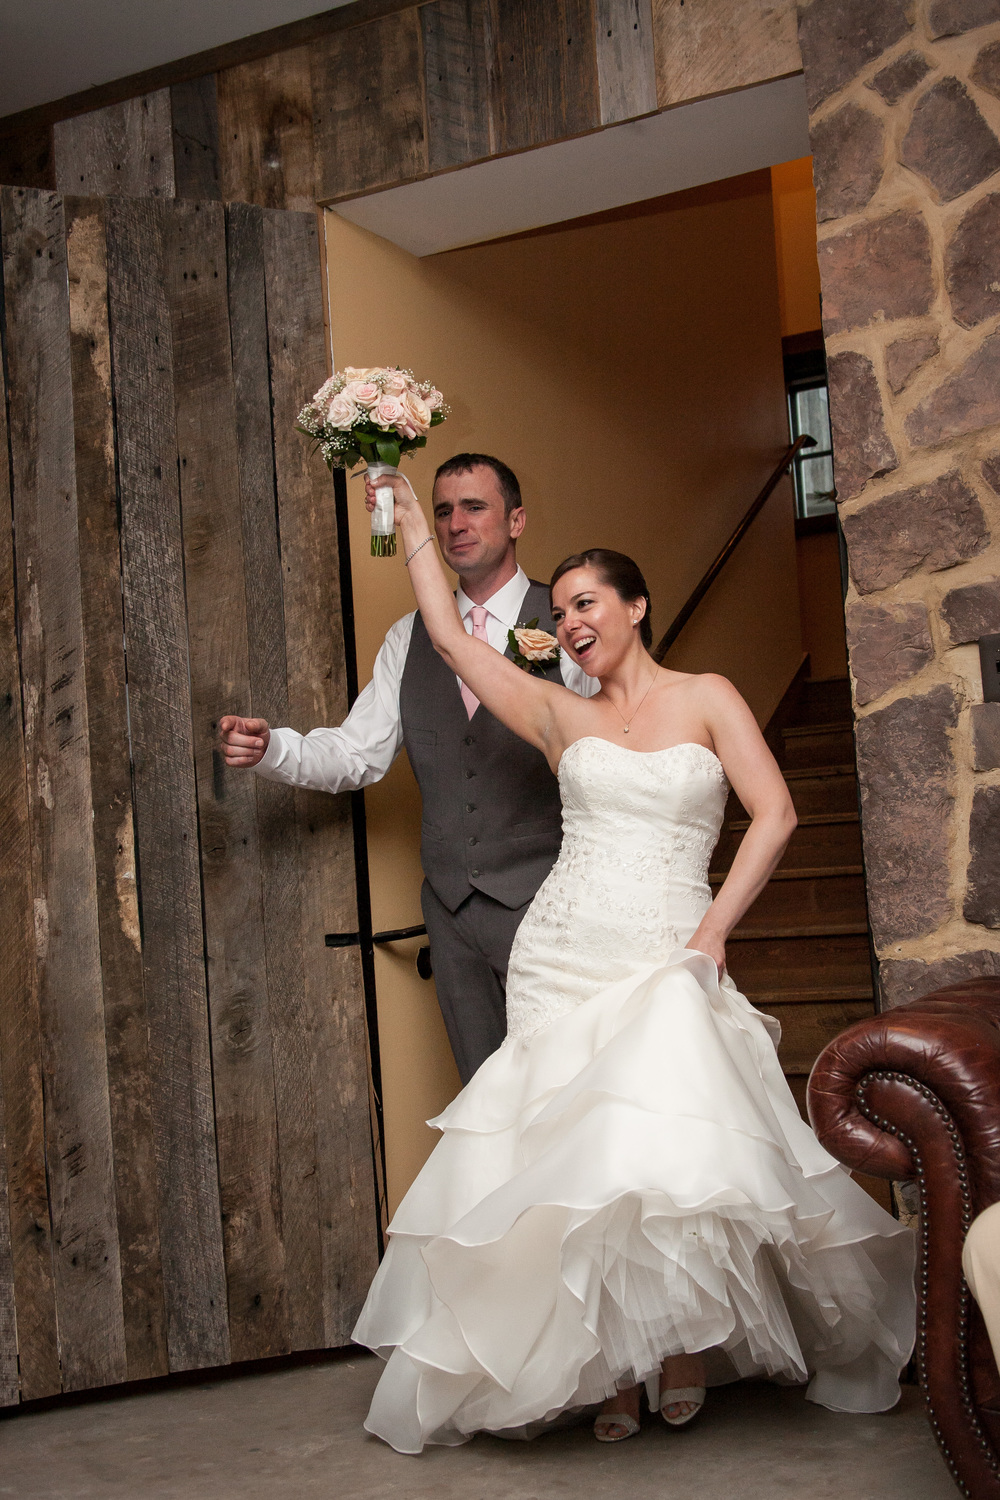 The Winery at Bull Run Wedding, Centreville, Virginia